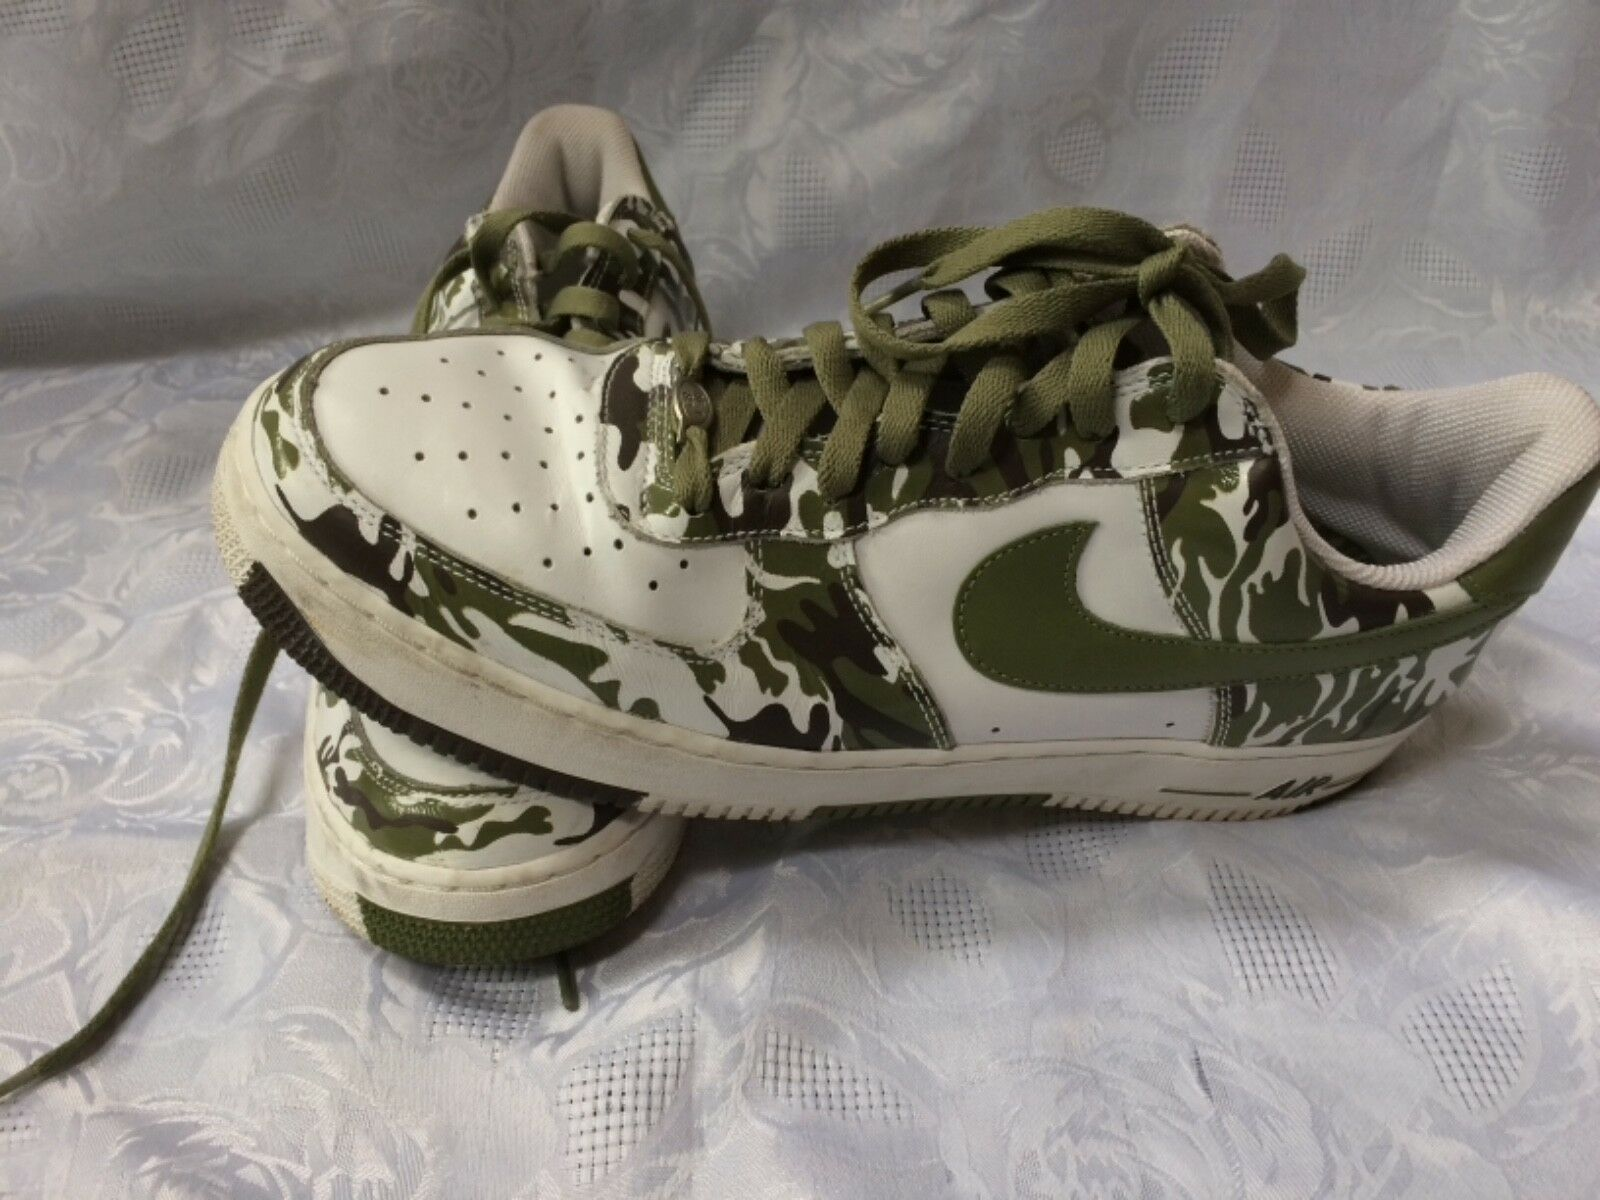 Nike Air Men's 13 Shoes⭐️White/Green Camouflage